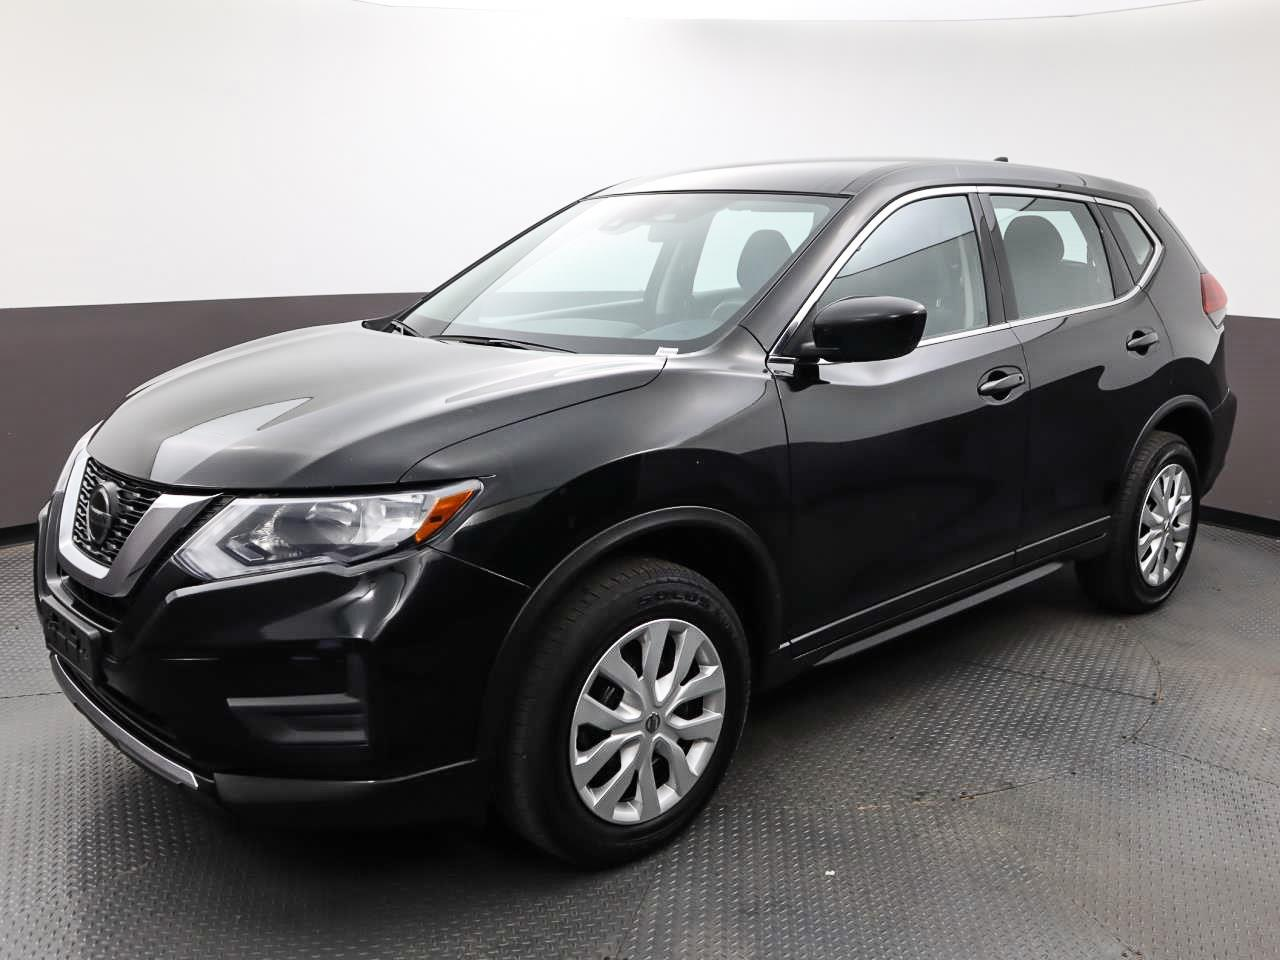 Used NISSAN ROGUE 2019 MARGATE S